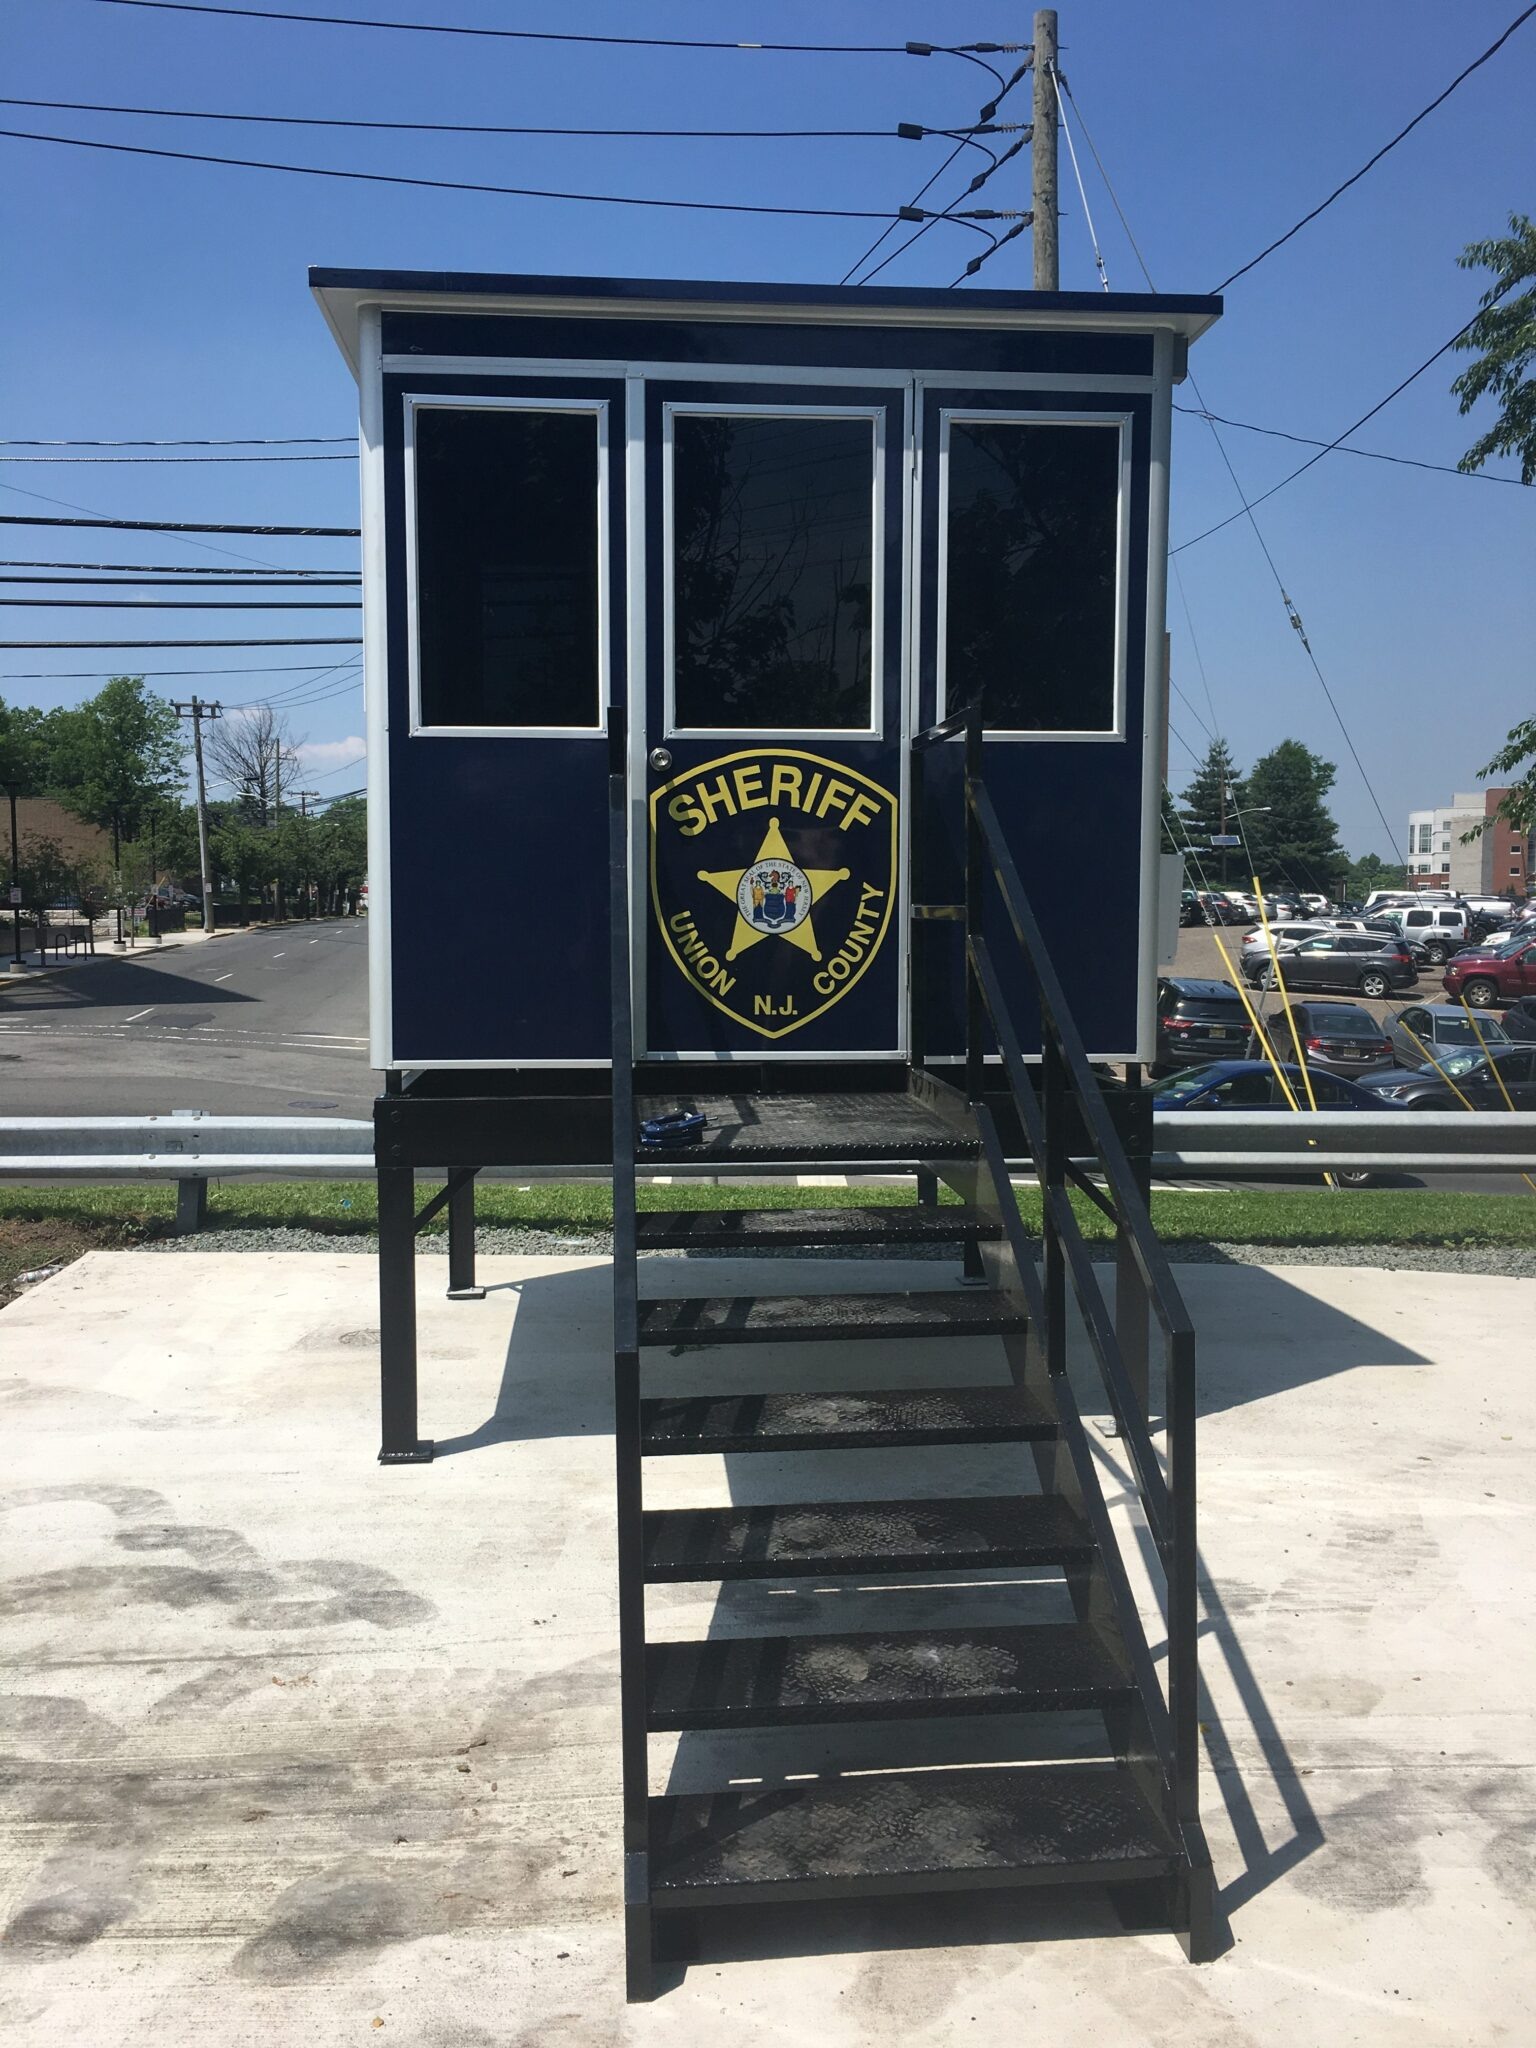 8x8 Security Guard Booth in Elizabeth, NJ with Mezzanine, Swing Door, Custom Exterior Color, and Breaker Panel Box